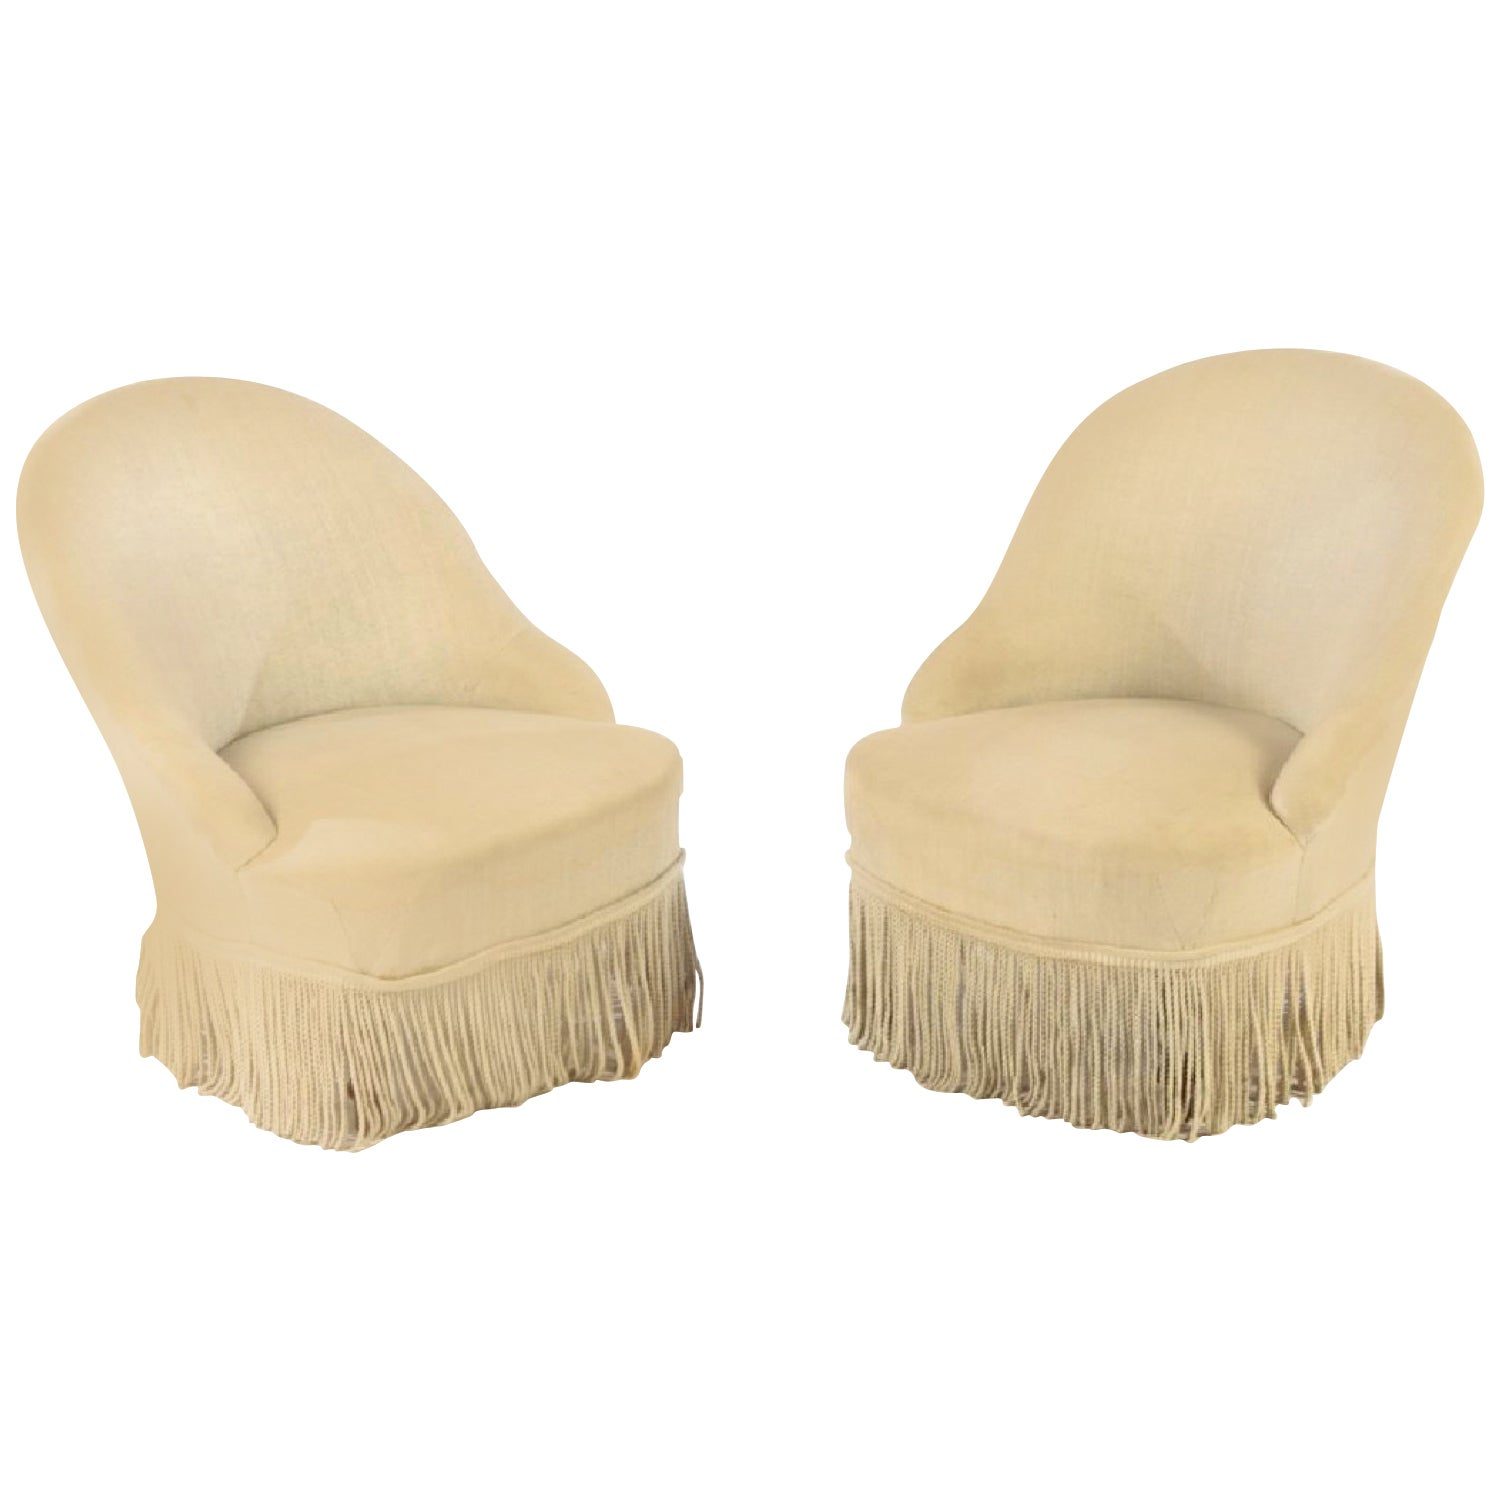 Napoleon III Style Slipper Chairs, Pair